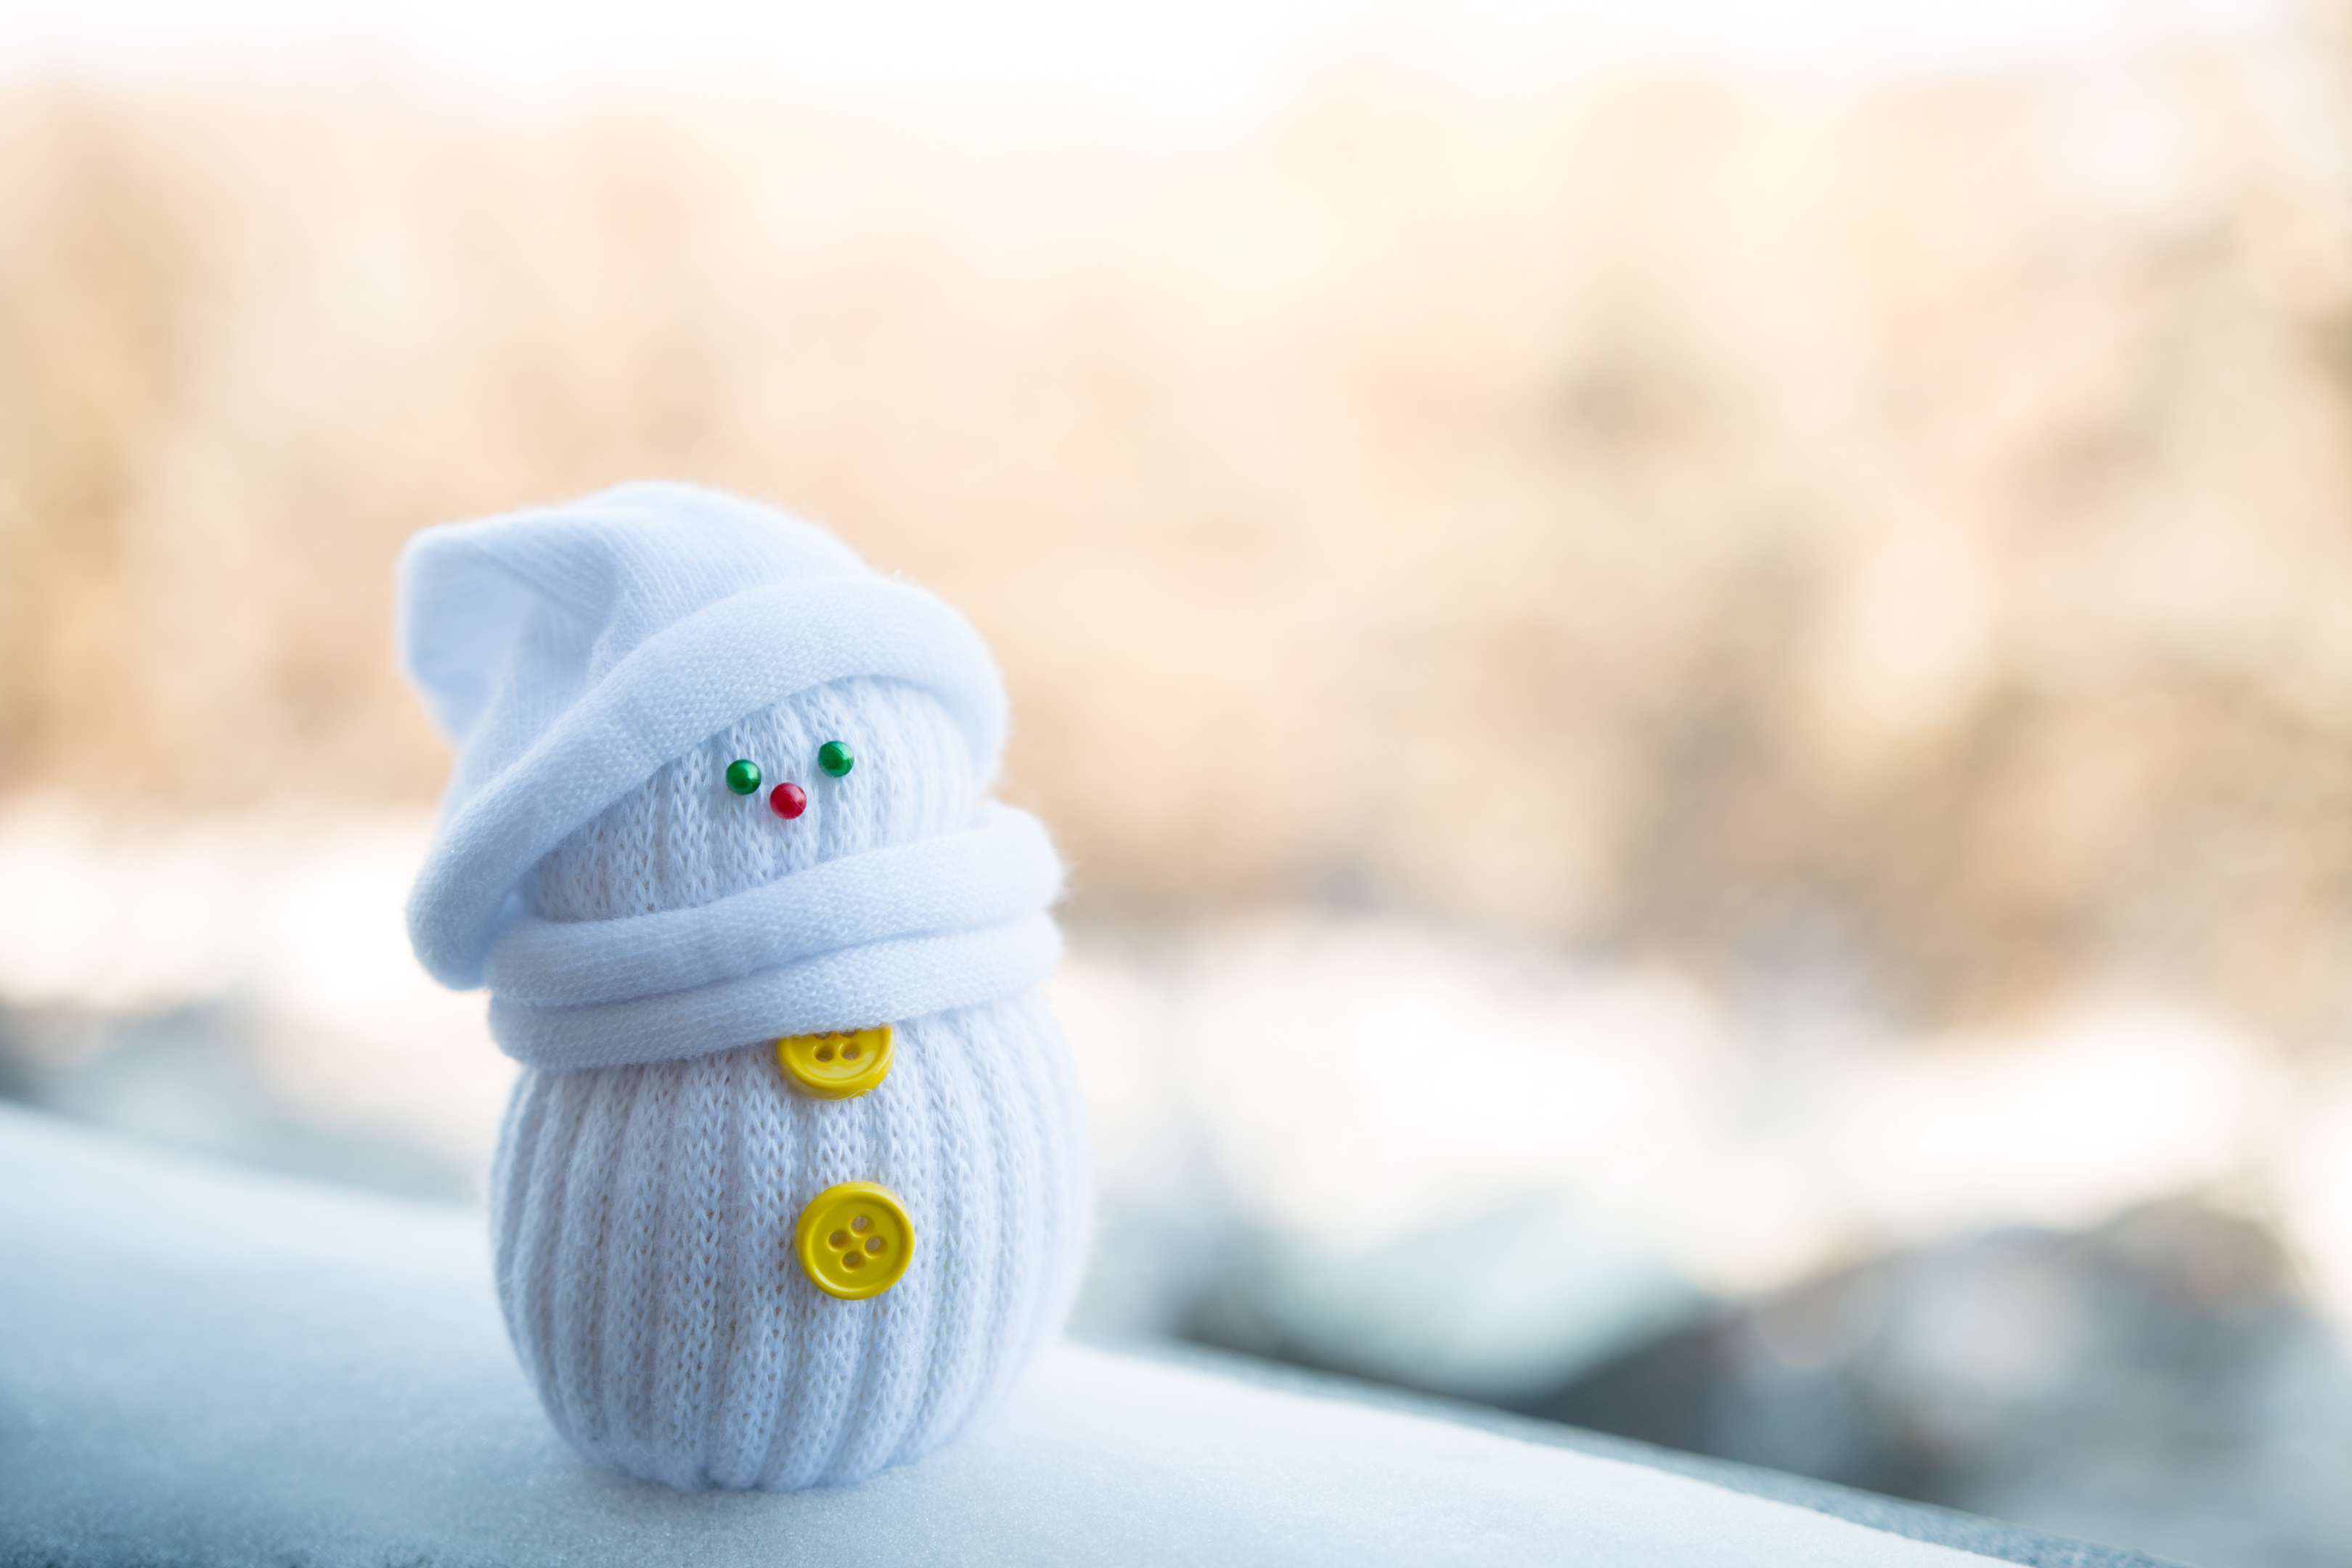 Cute little snowman on a blurry background